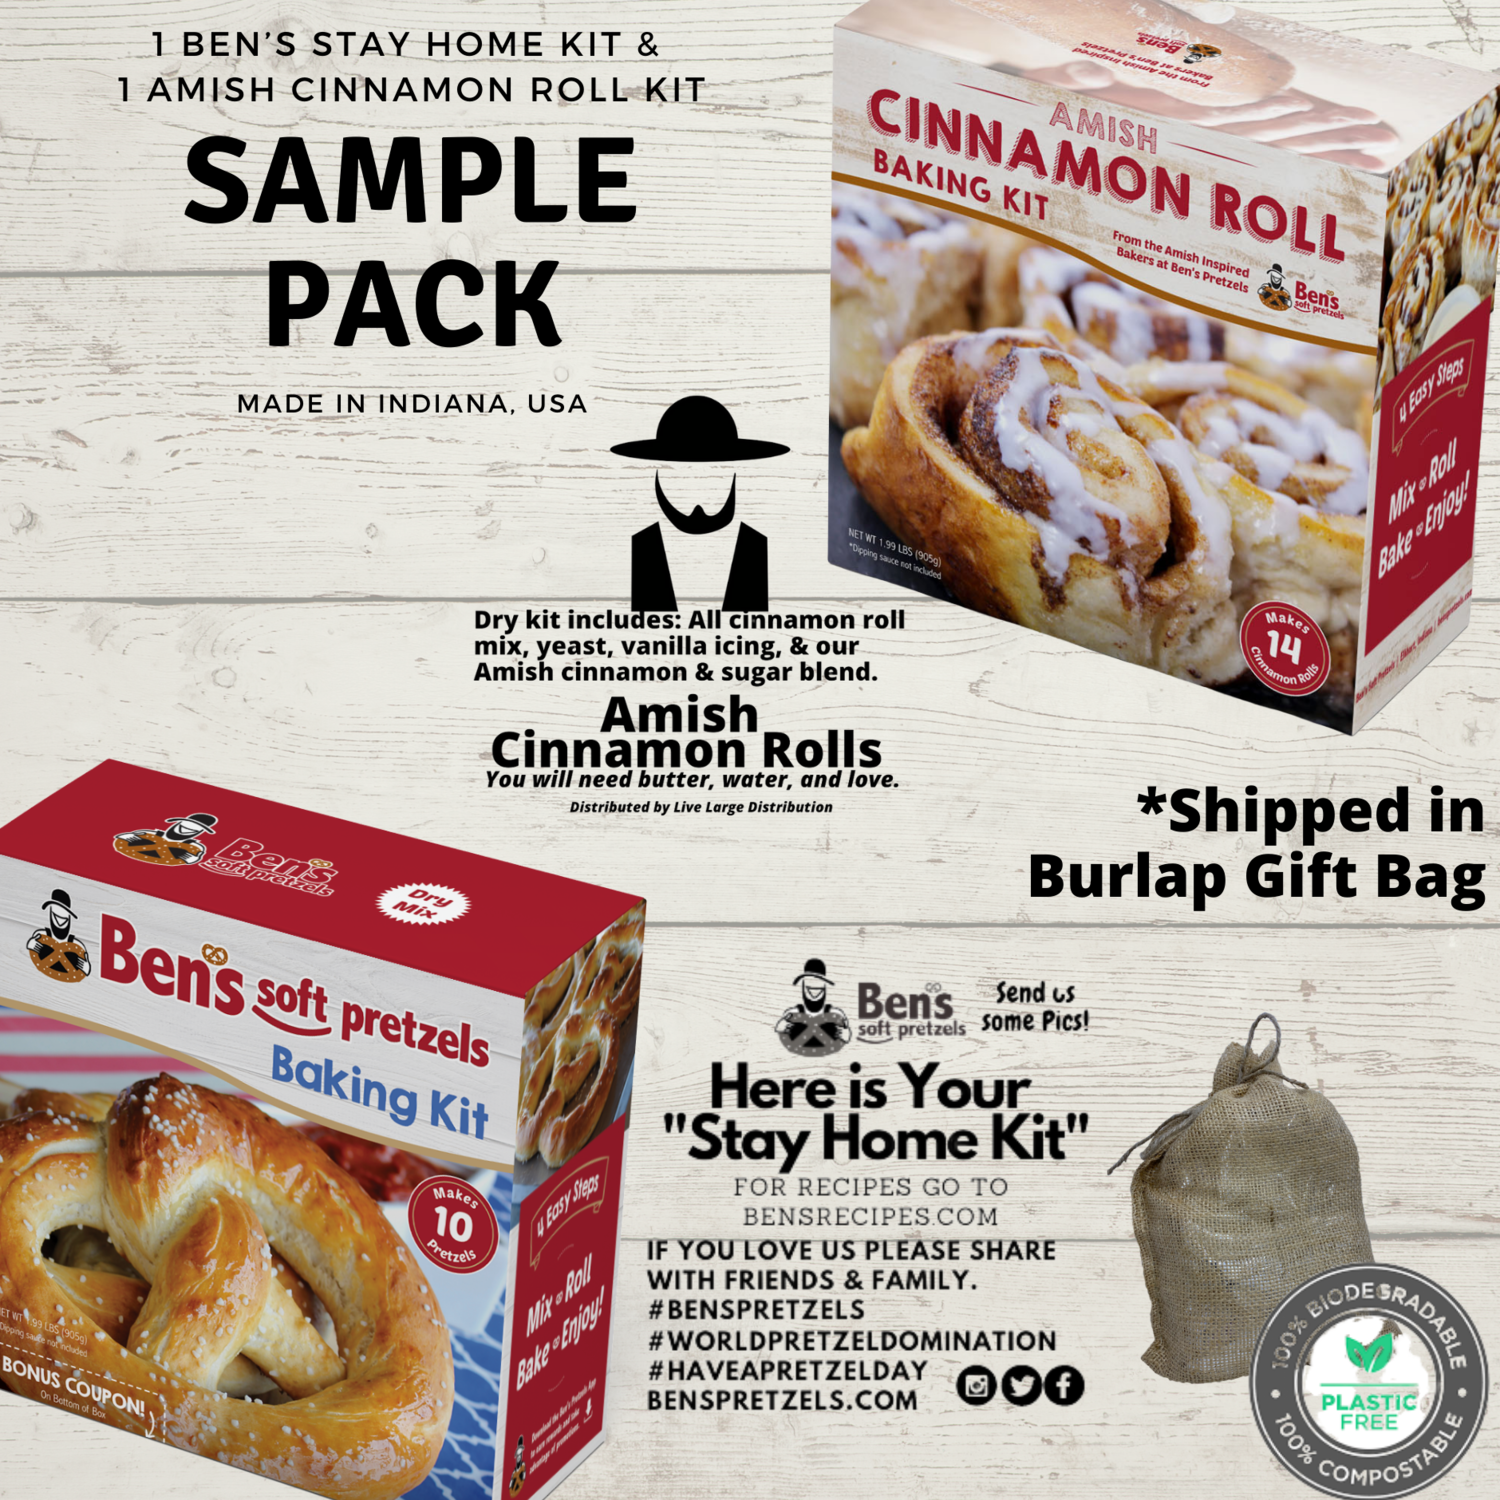 Amish Baking Sample Pack-1 Ben's Soft Pretzels Kit and 1 Amish Cinnamon Roll Kit